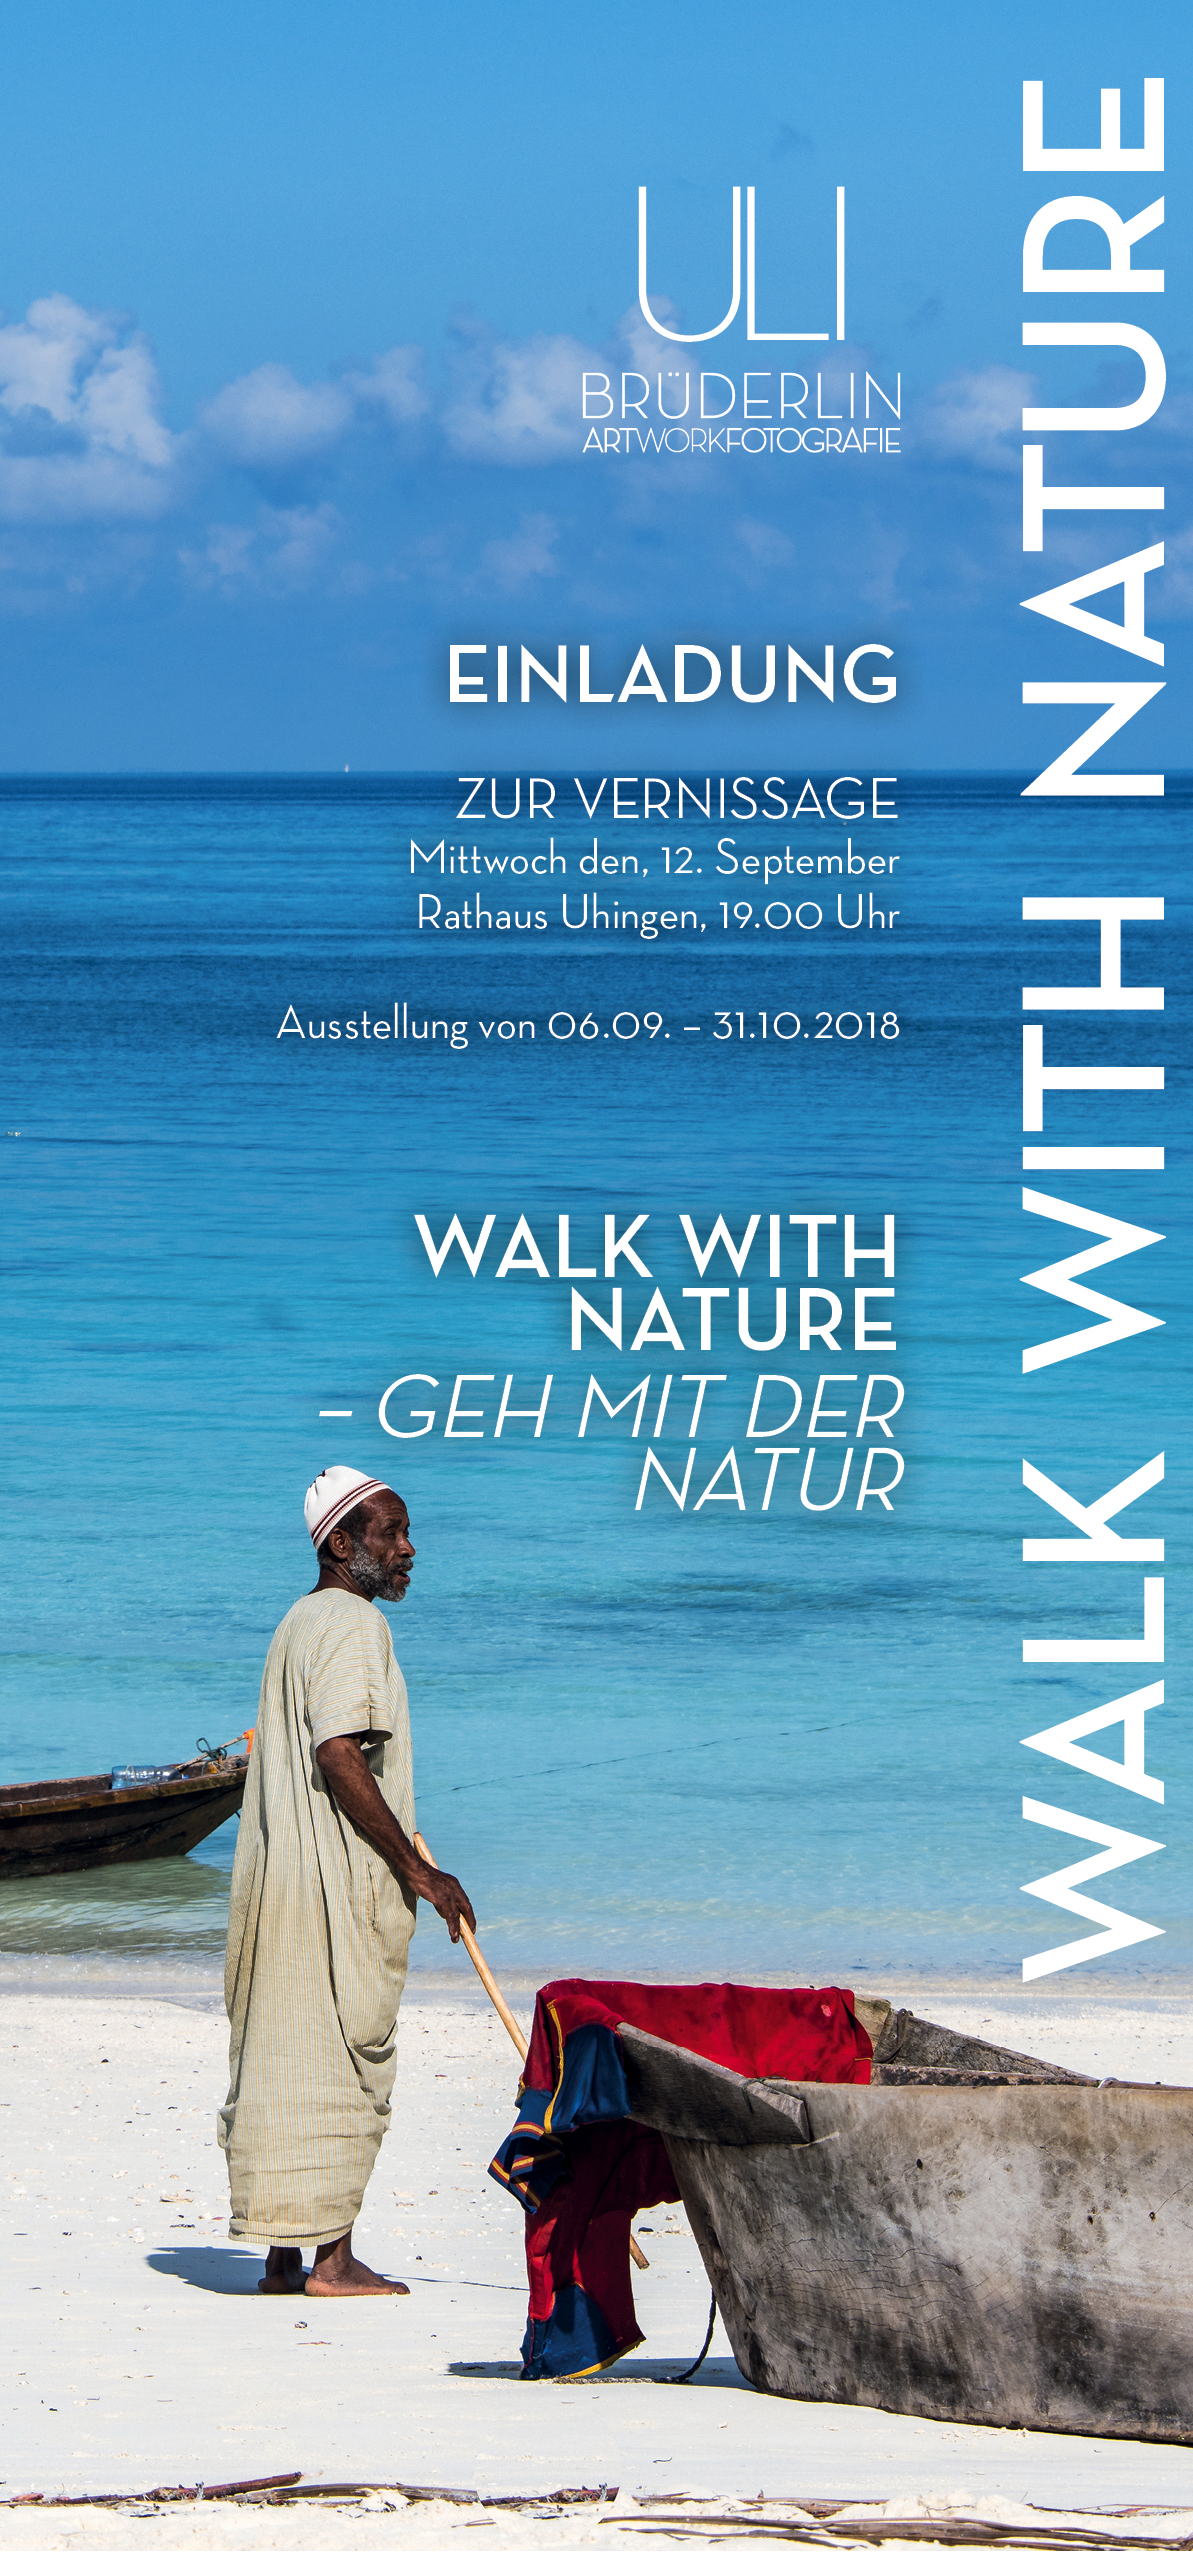 Uli+Flyer+6+walk+with+natur+RZ-1.jpg